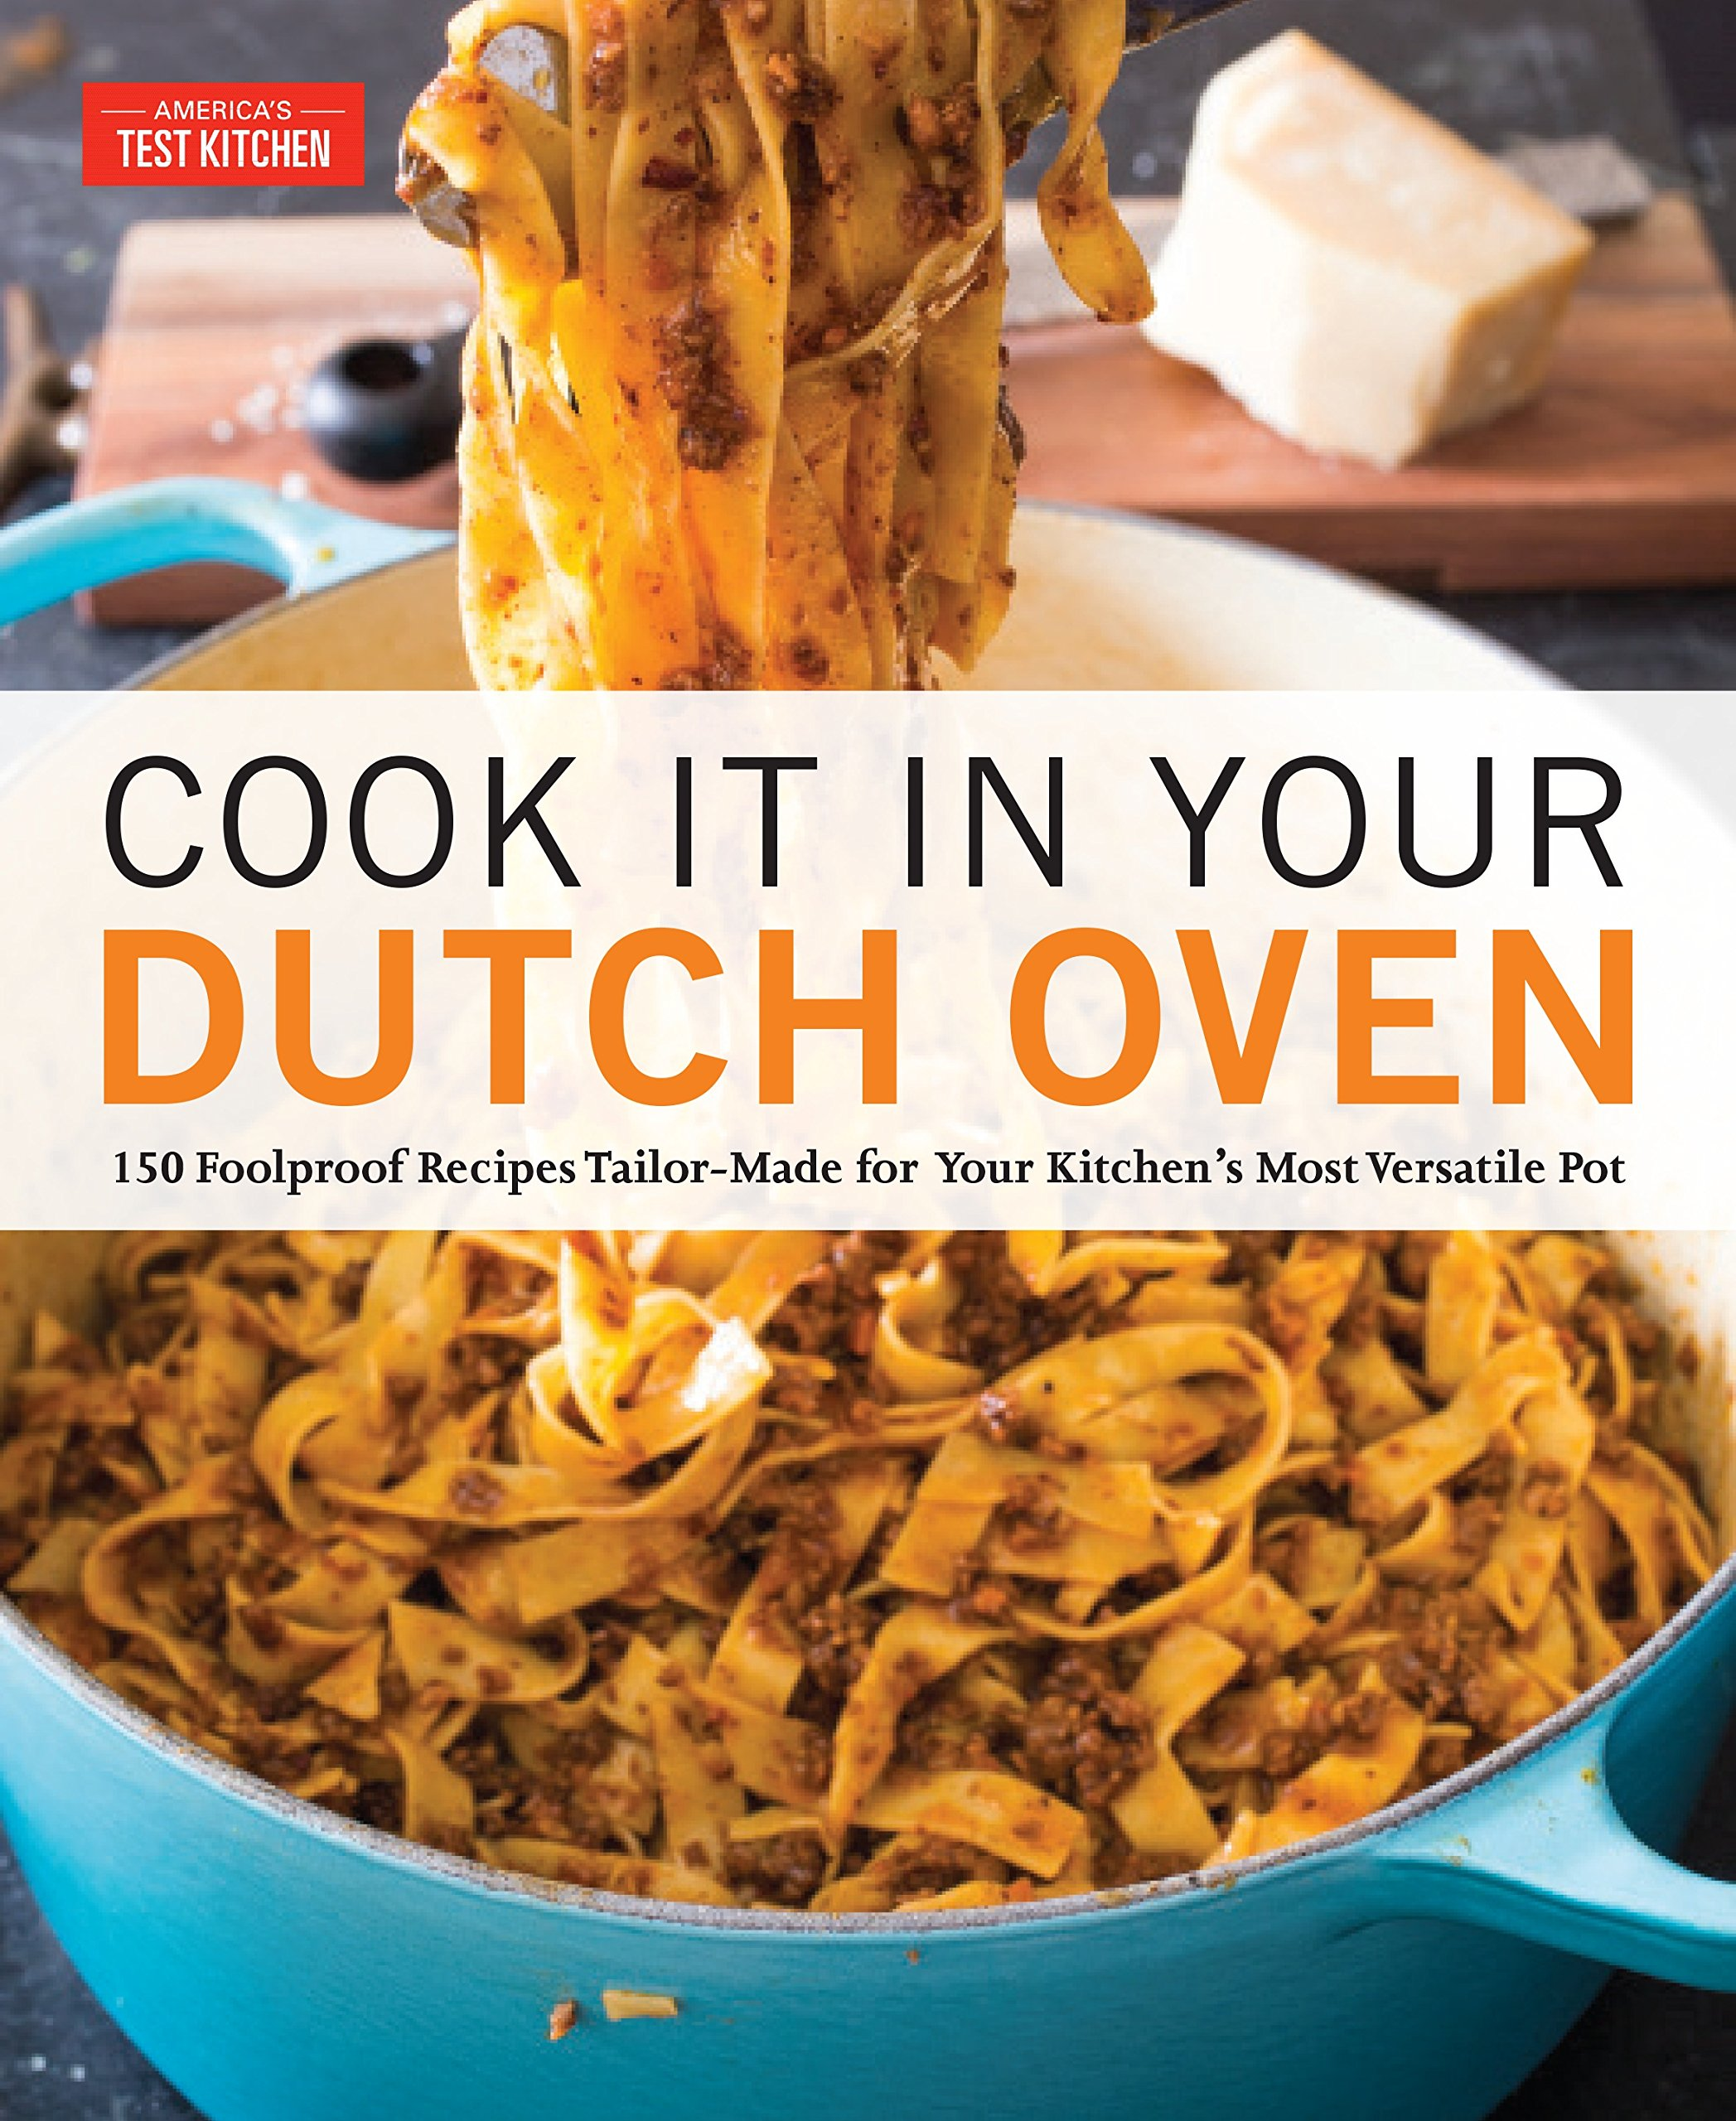 Cook It in Your Dutch Oven: 150 Foolproof Recipes Tailor-Made for Your Kitchen's Most Versatile Pot by America's Test Kitchen